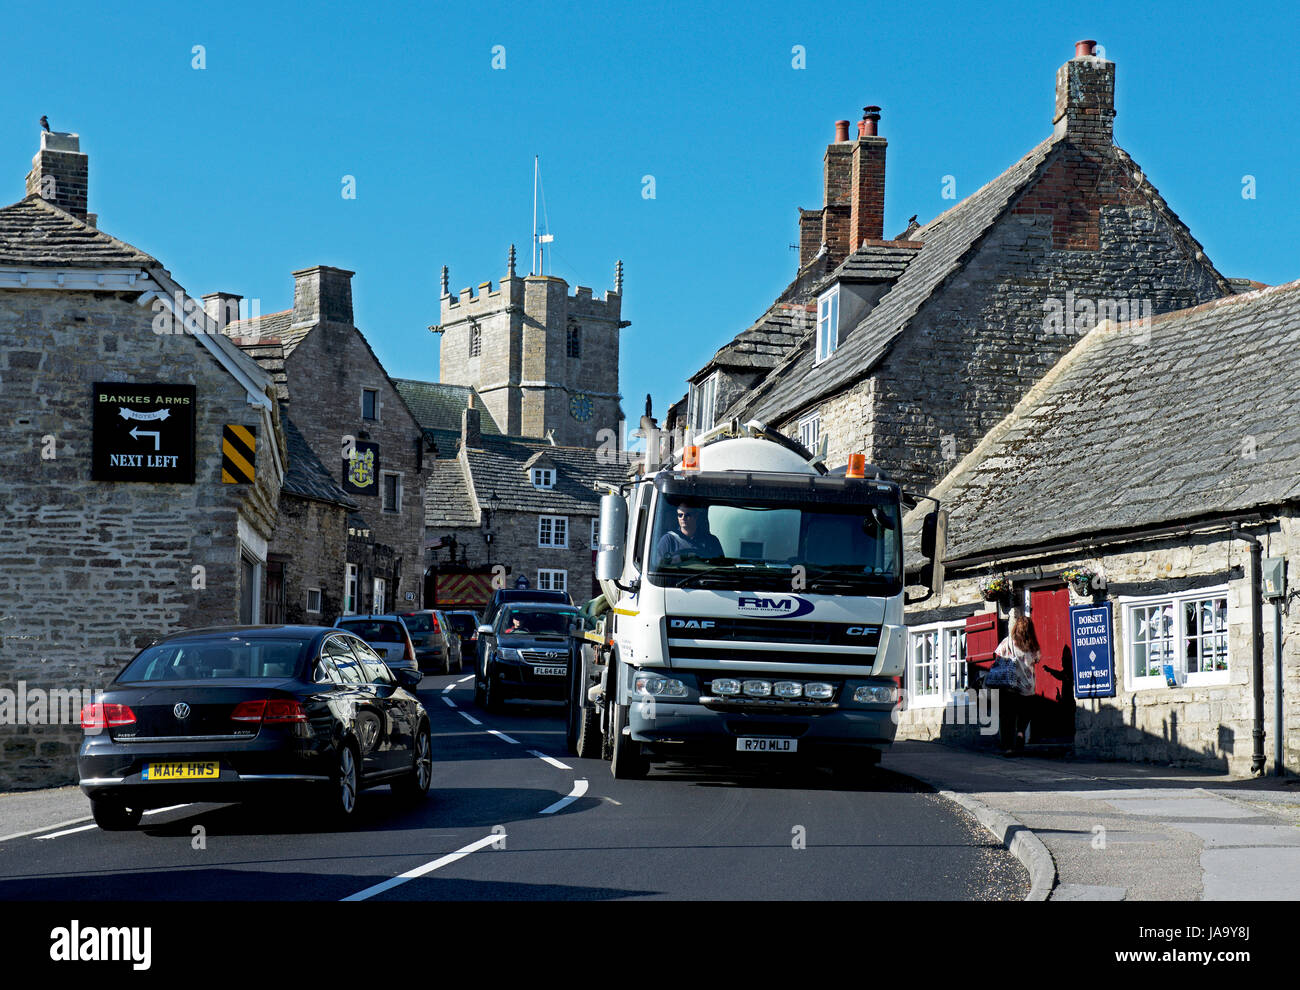 Traffic congestion in the village of Corfe Castle, Dorset, England UK - Stock Image